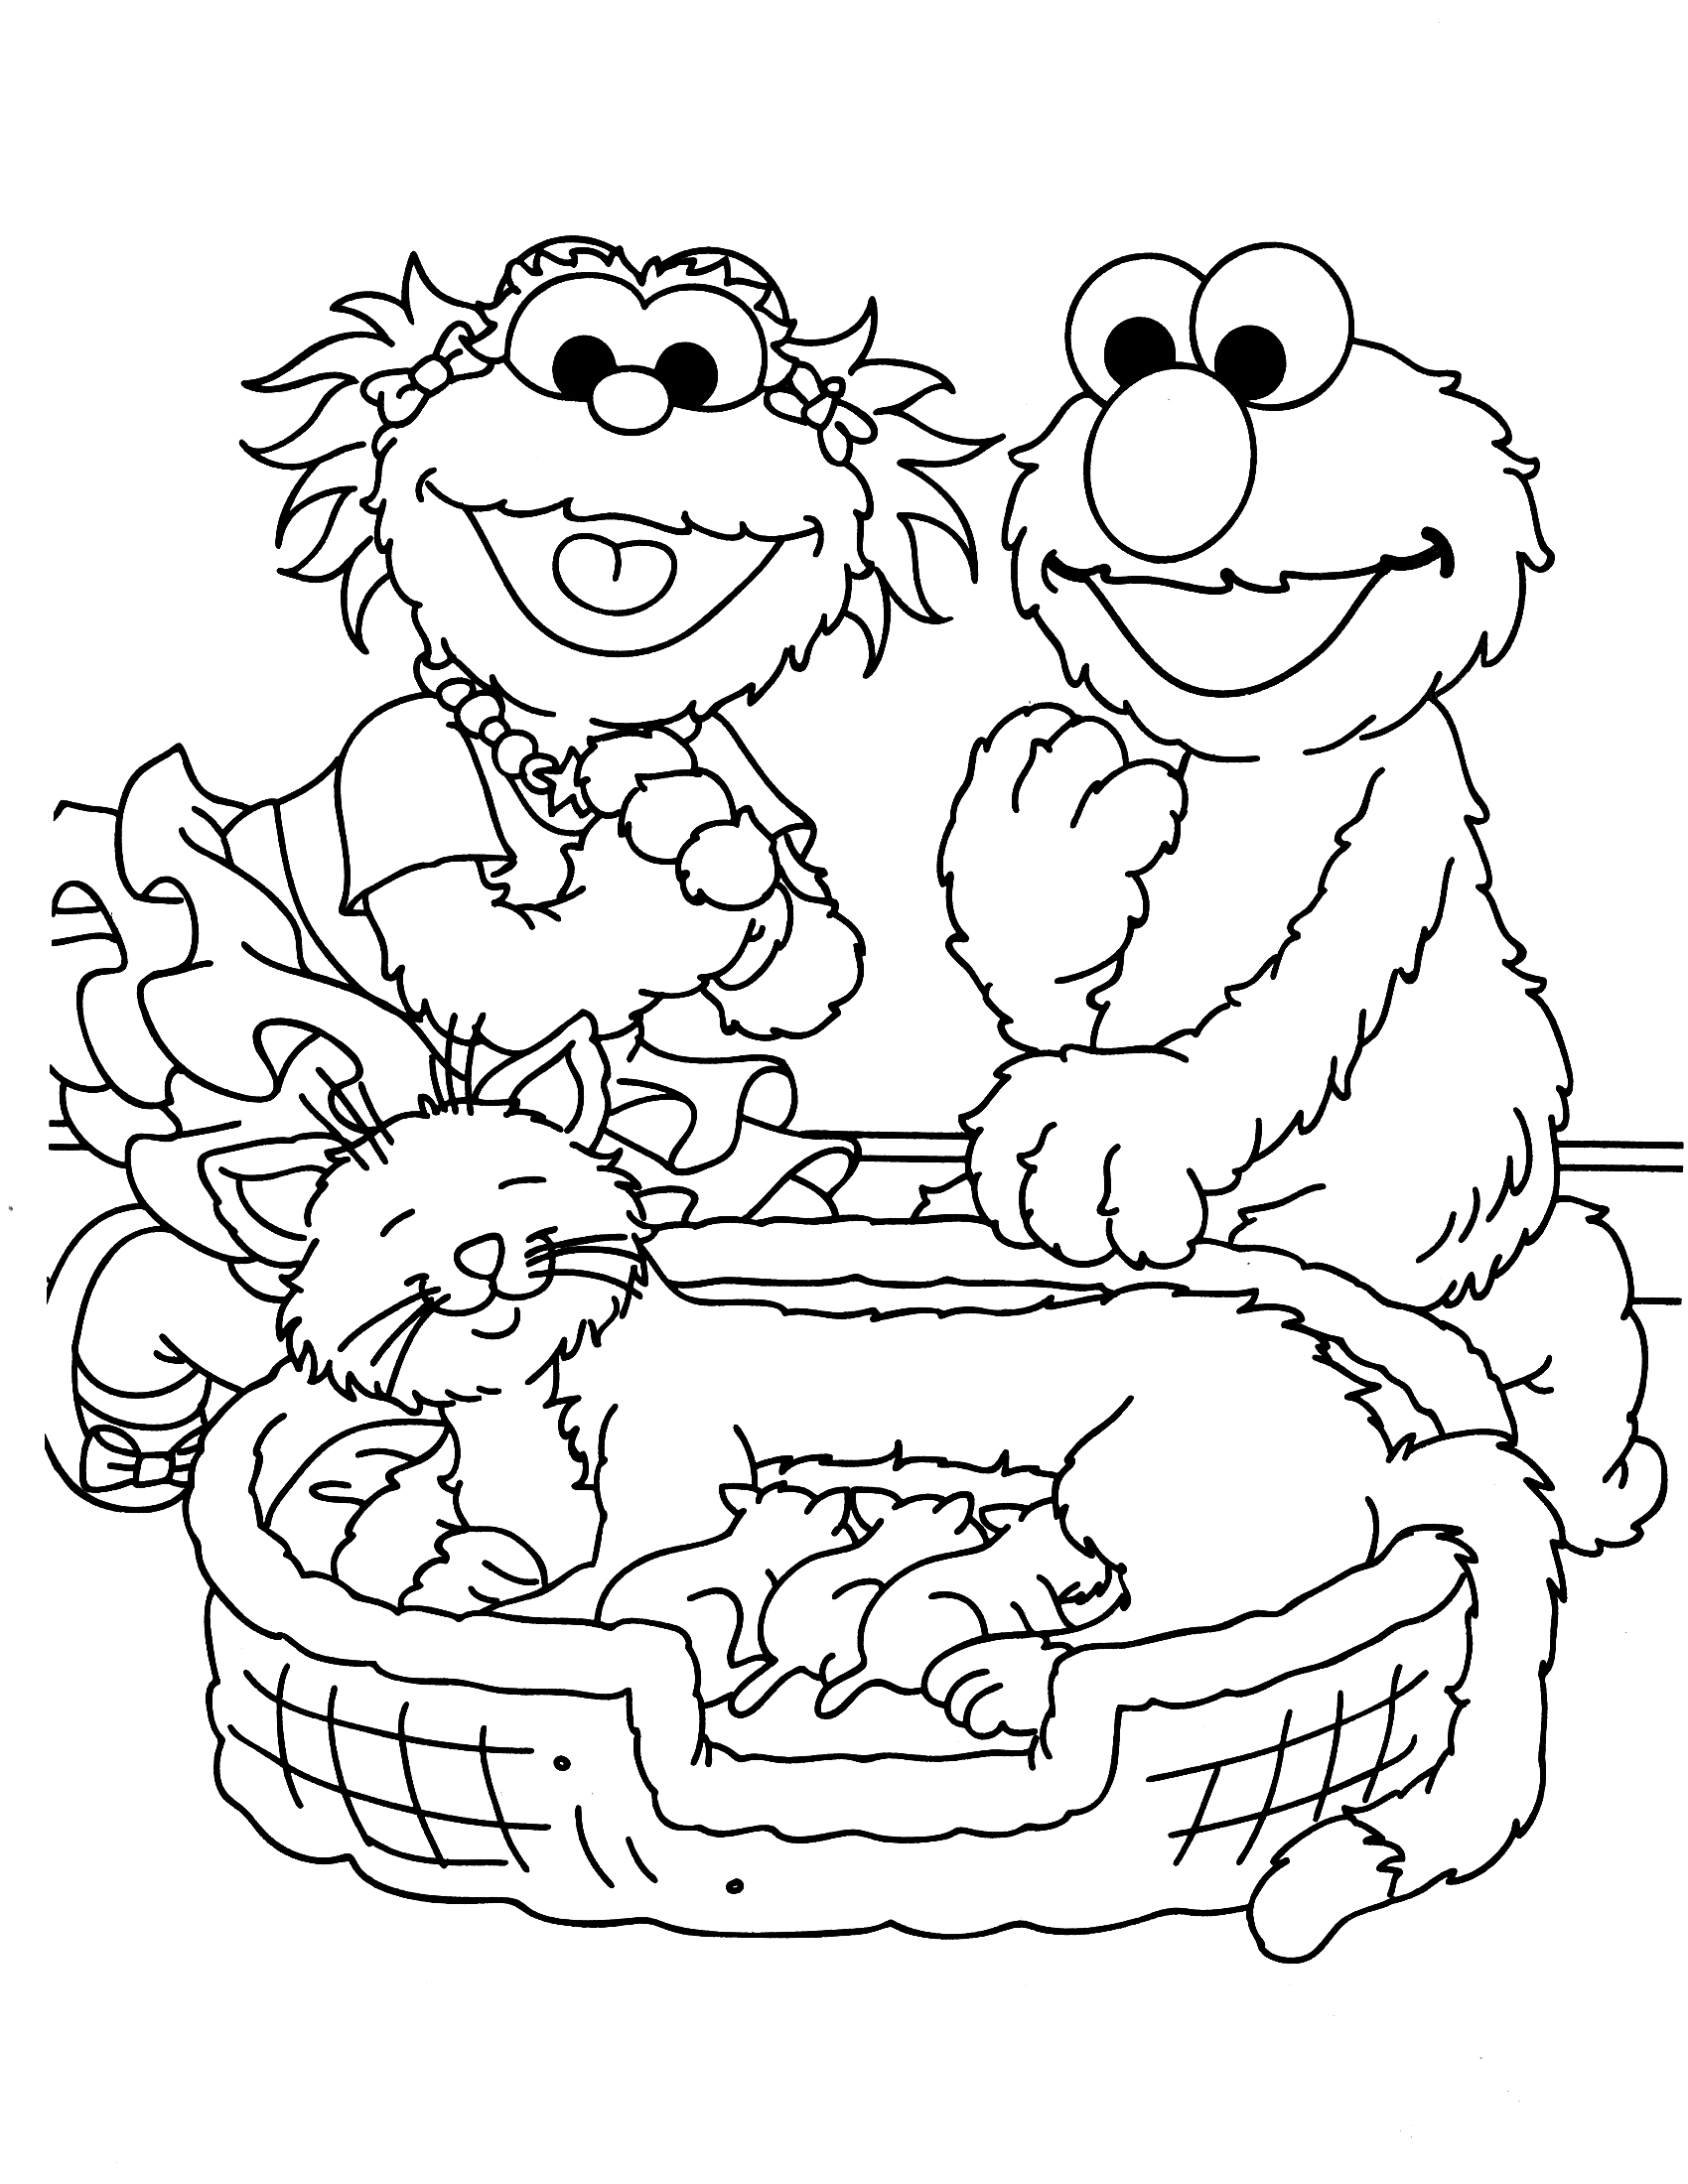 sesame street birthday coloring book ; sesame-street-coloring-pages-printable-1st-b-day-pinterest-and